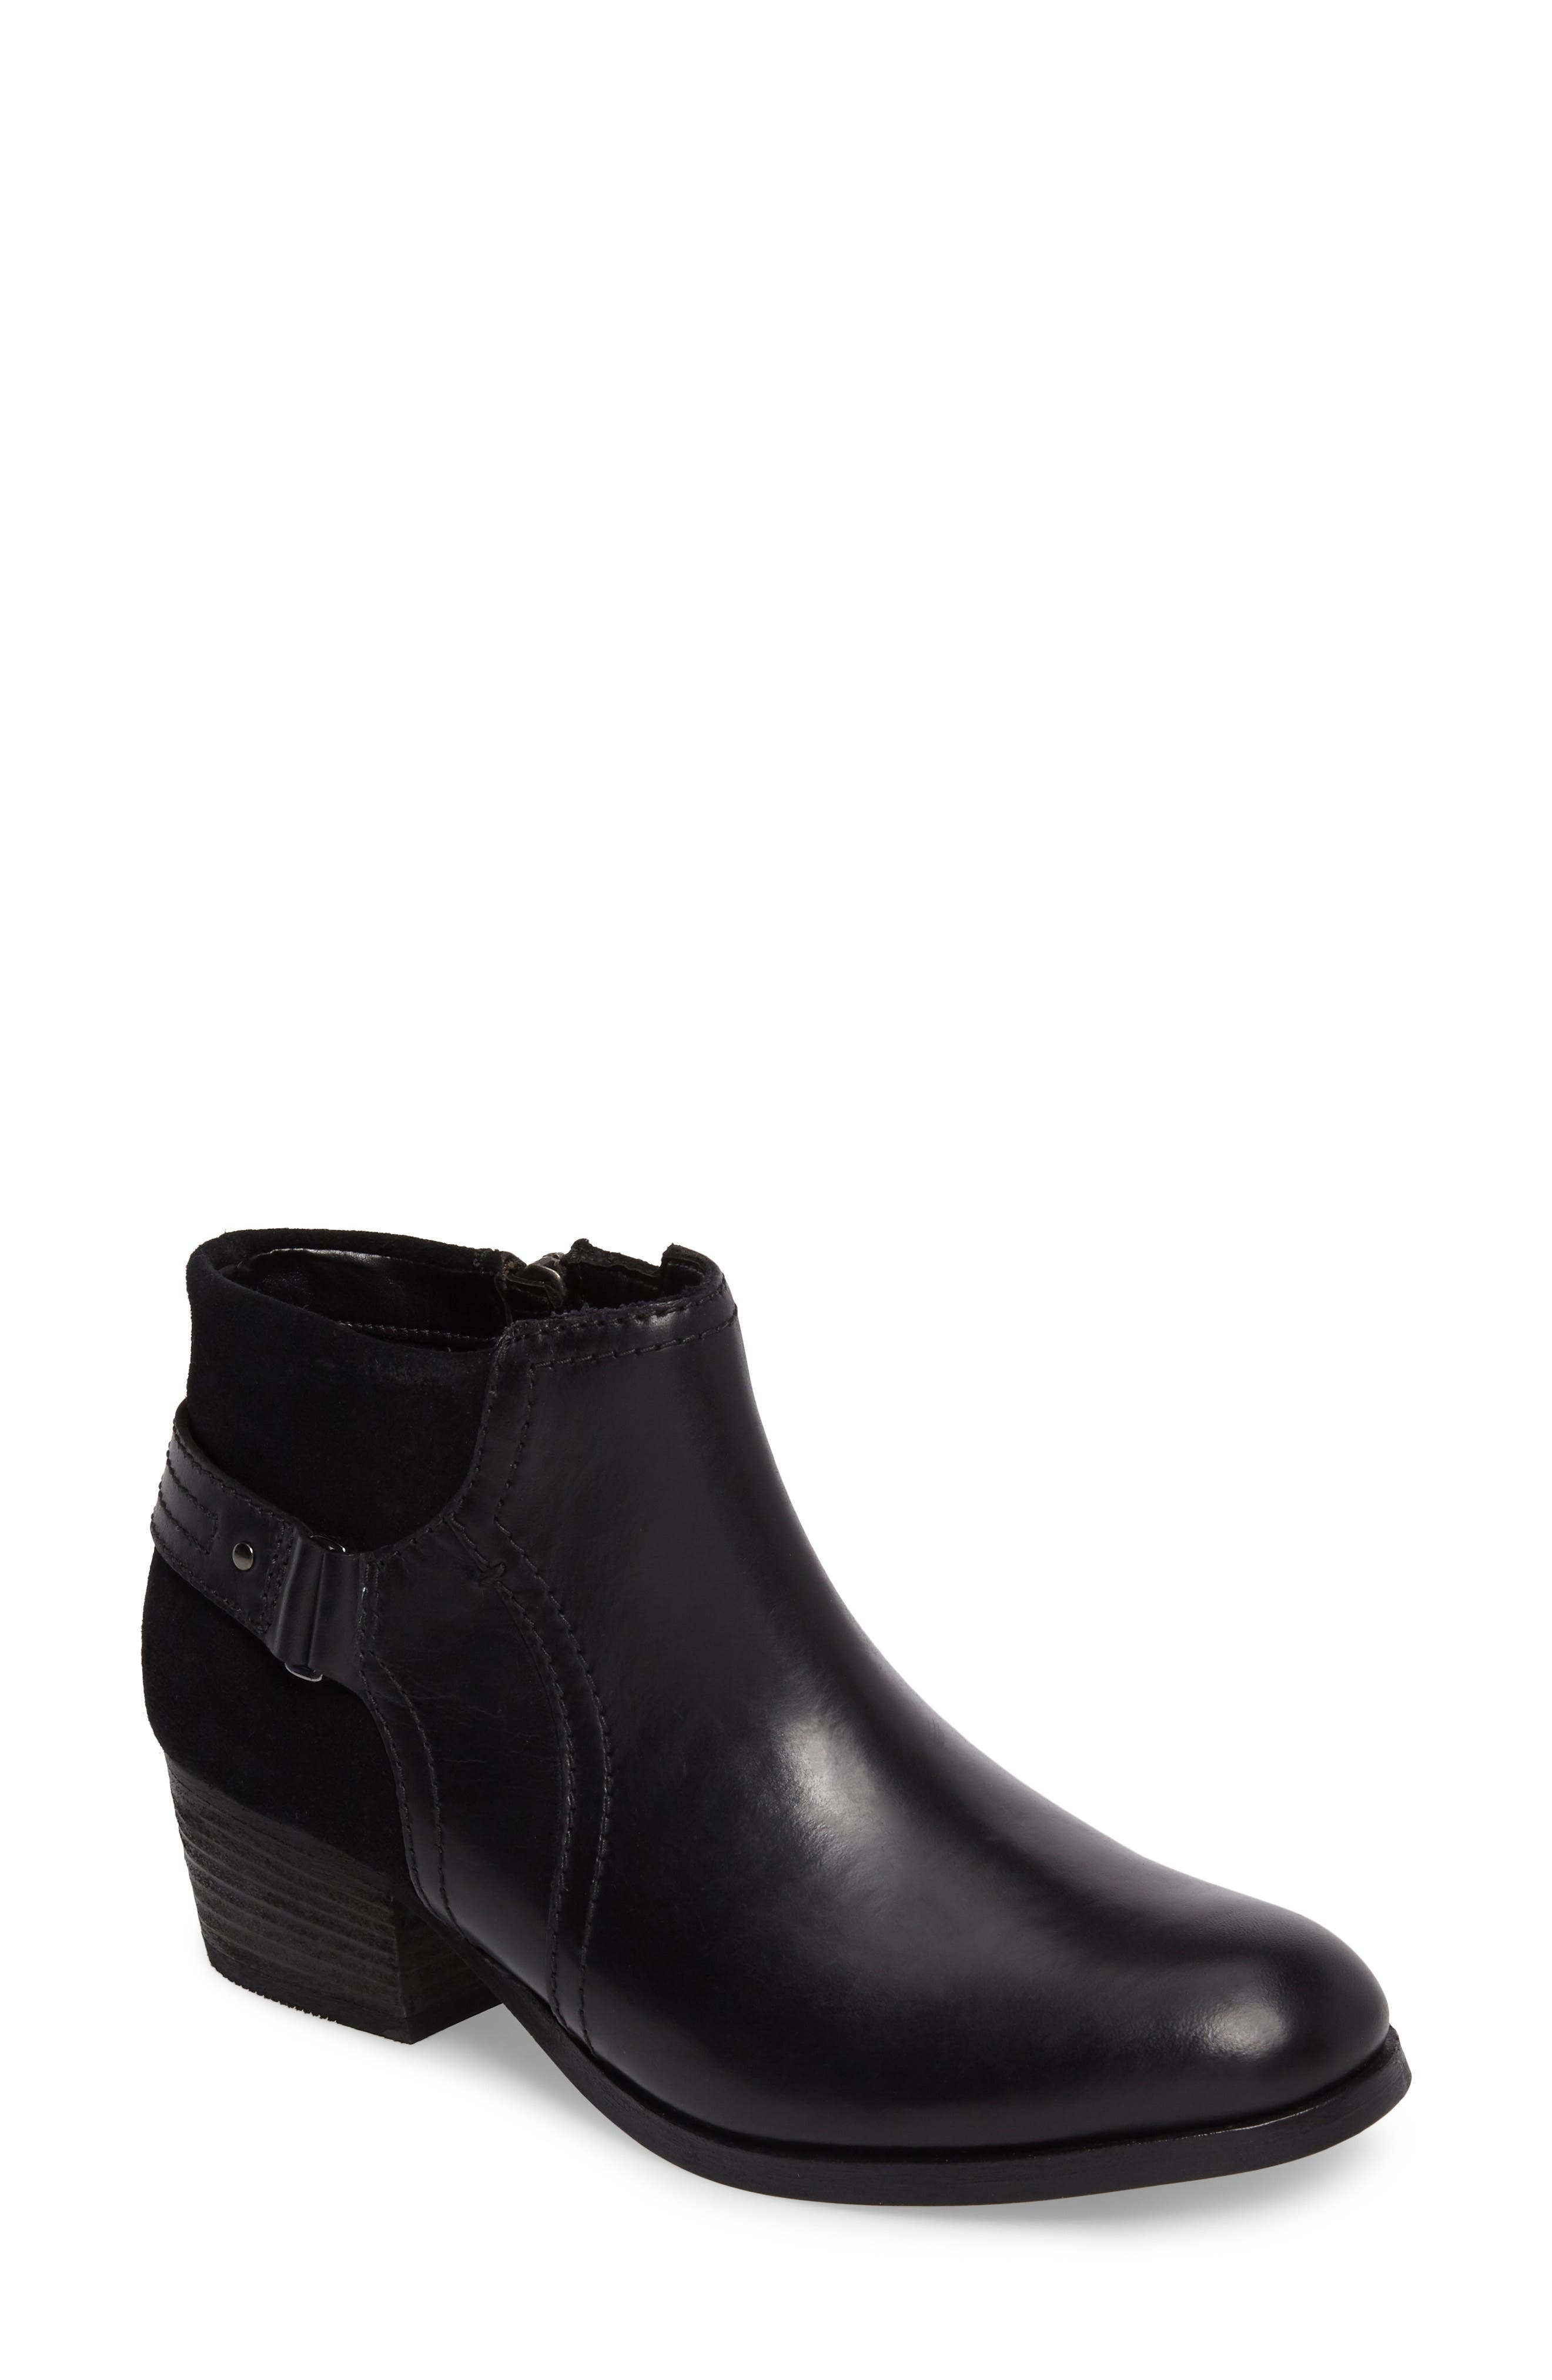 Maypearl Lilac Bootie,                         Main,                         color, 019